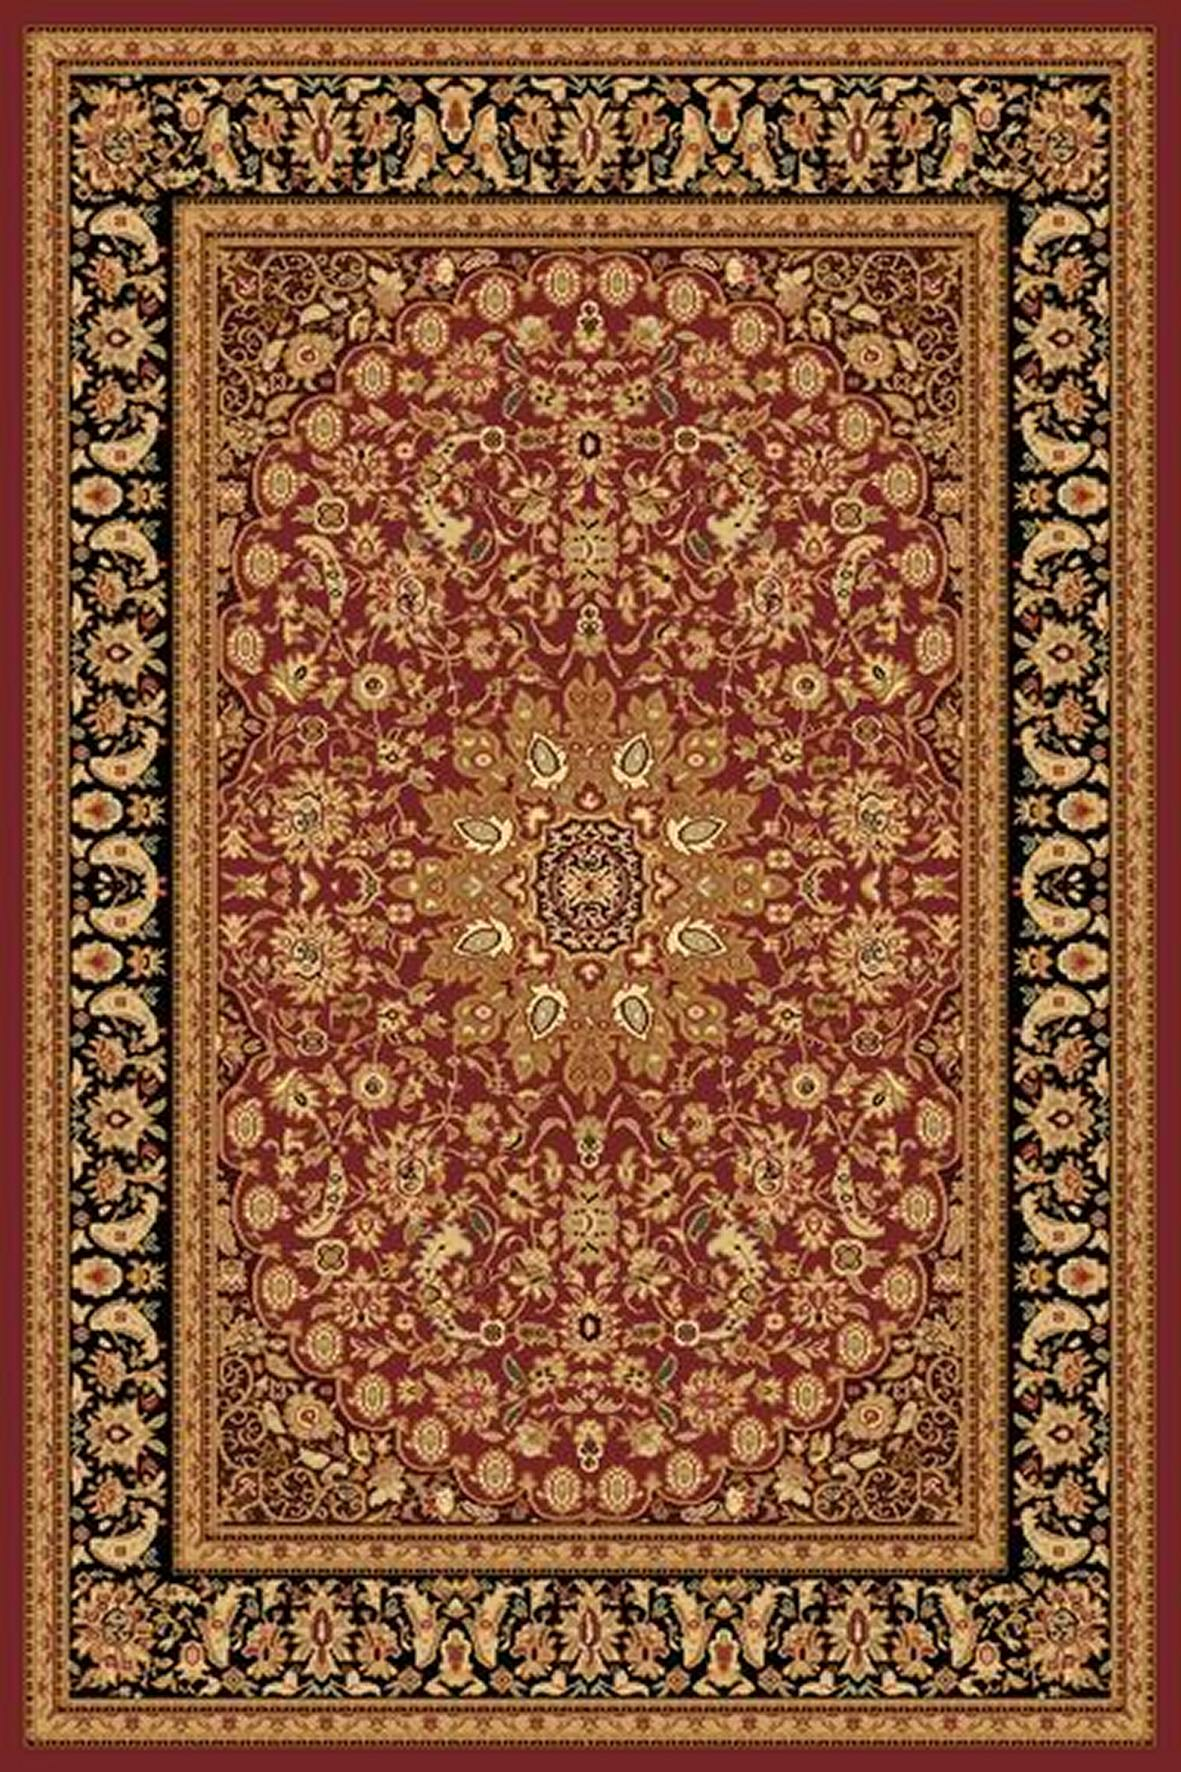 Dynamic Rugs Yazd Classic Red-black 2800 Area Rug